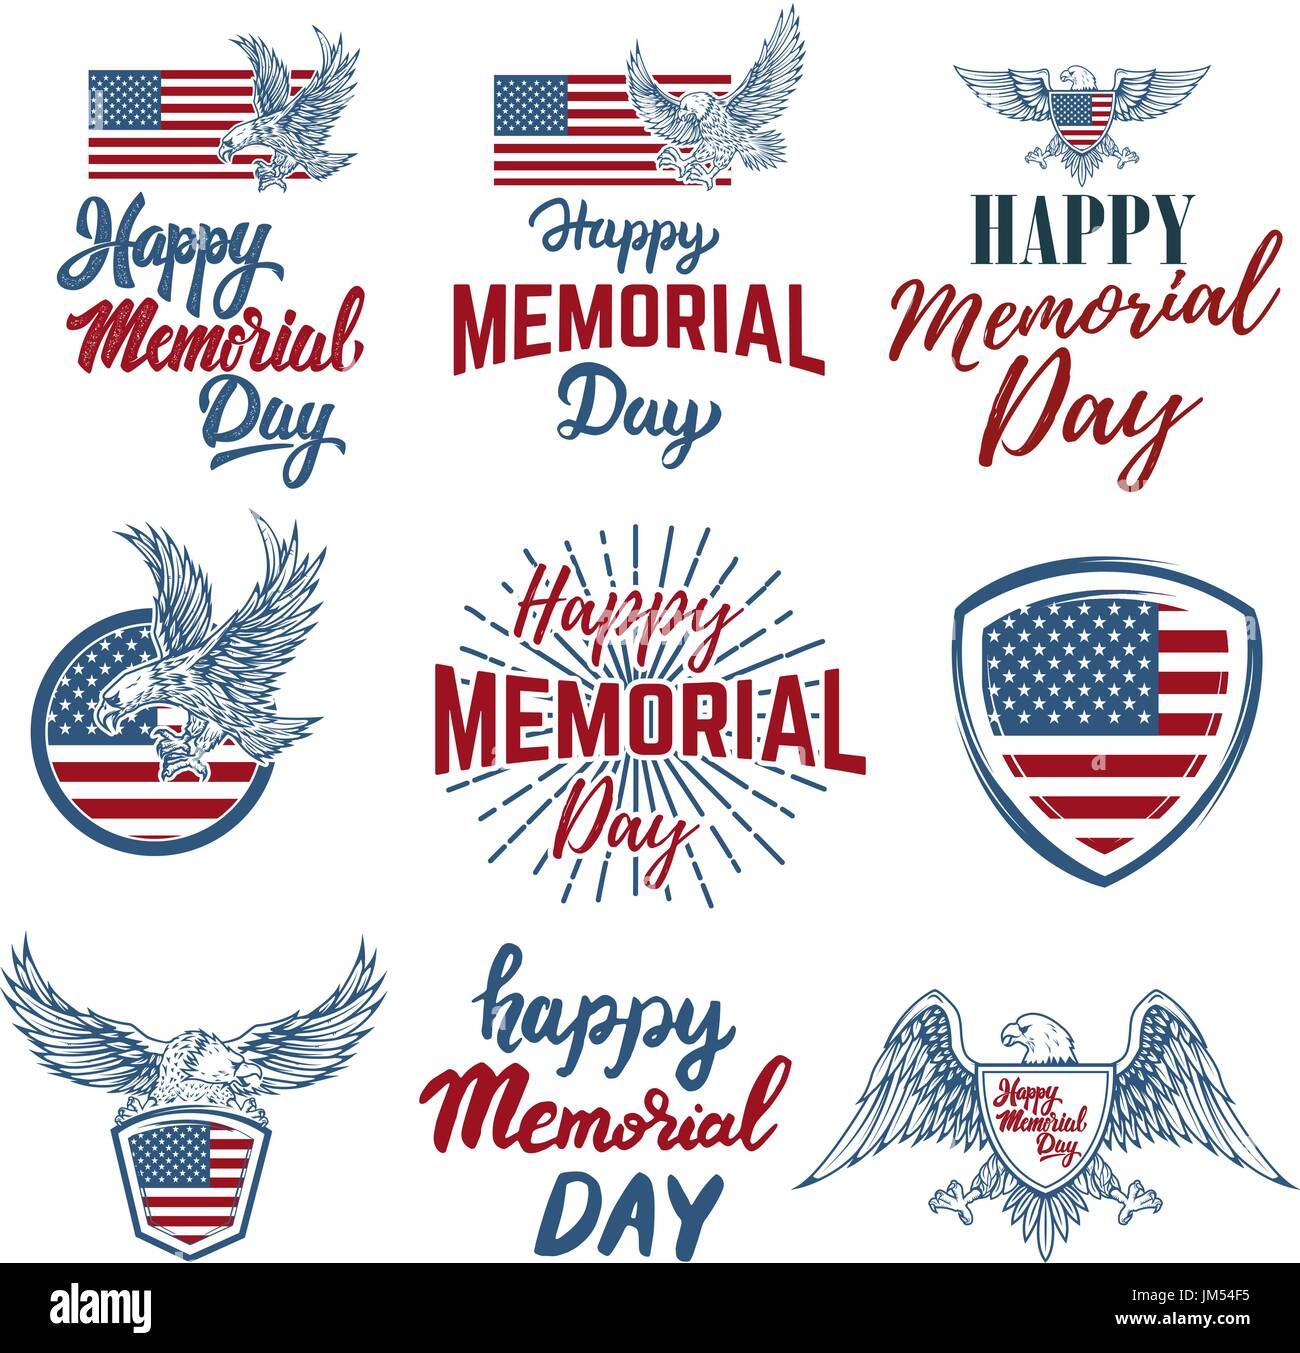 Memorial Day Food Label/Tags Free-download | !! Top Bloggers To ...